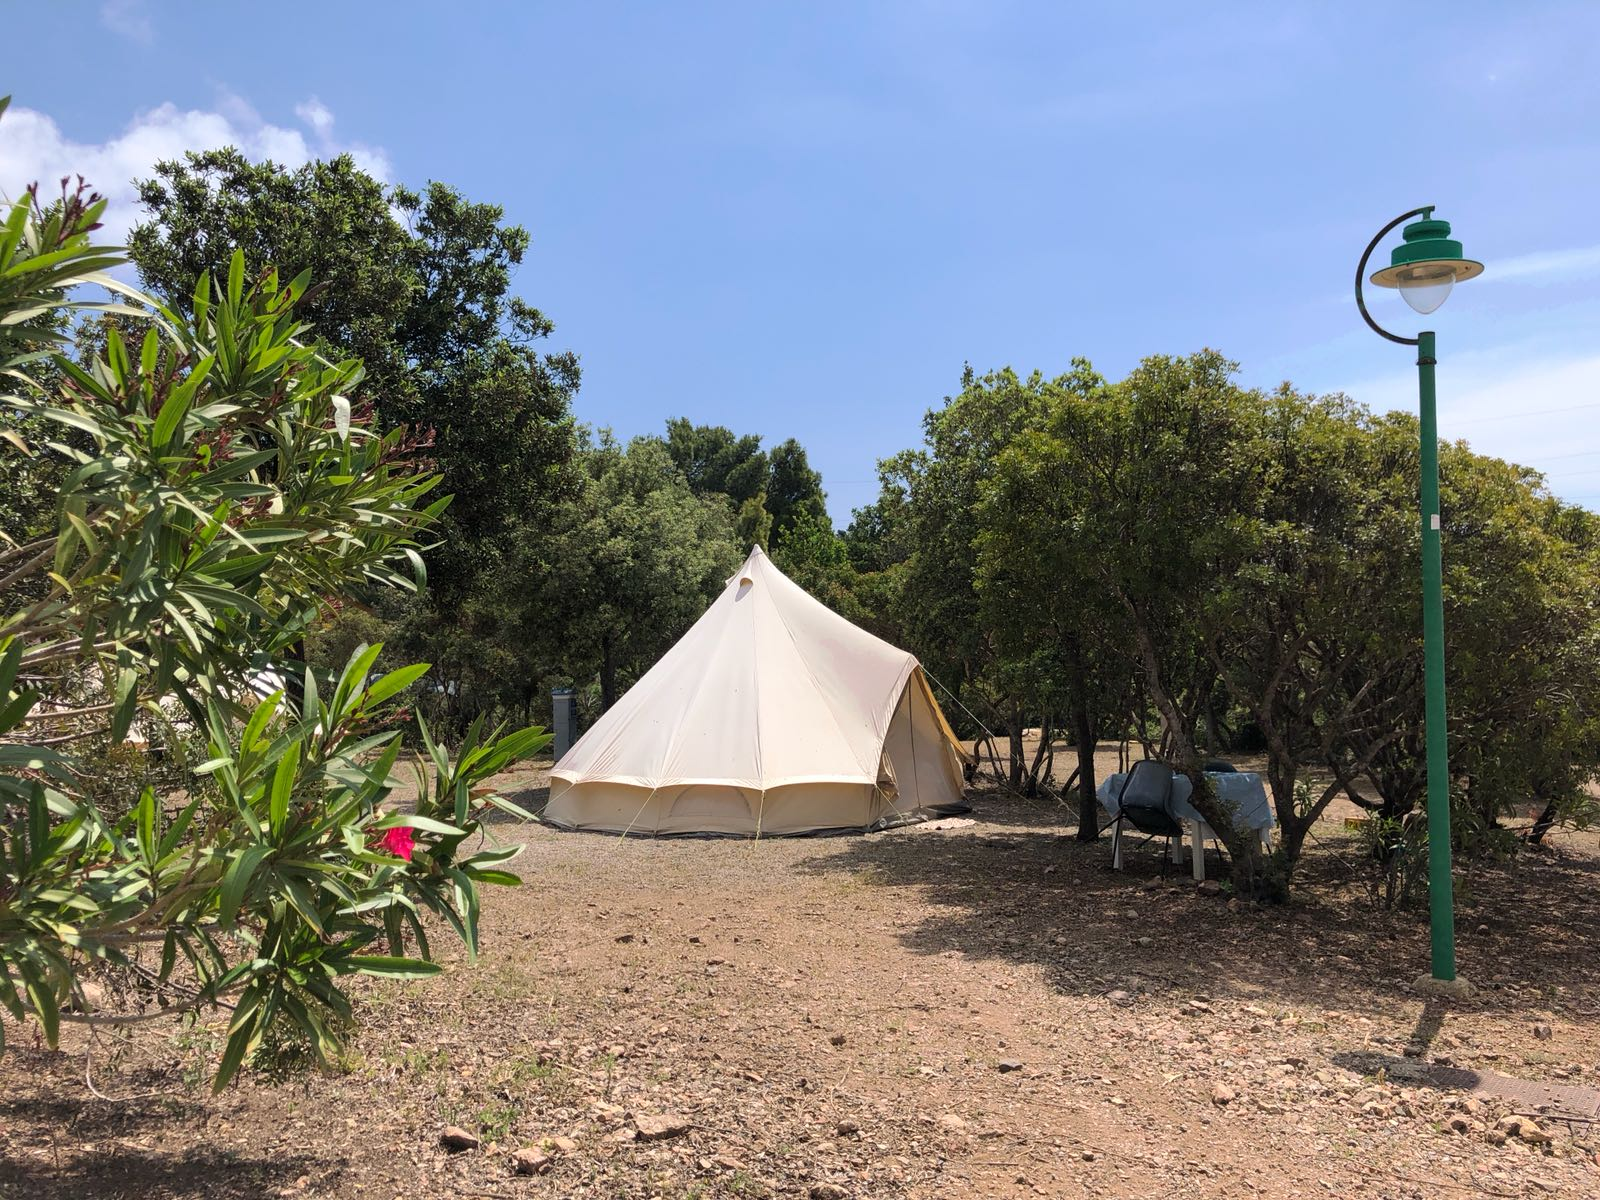 Camping tesonis tende teepee e glamping - Camping bagno privato ...